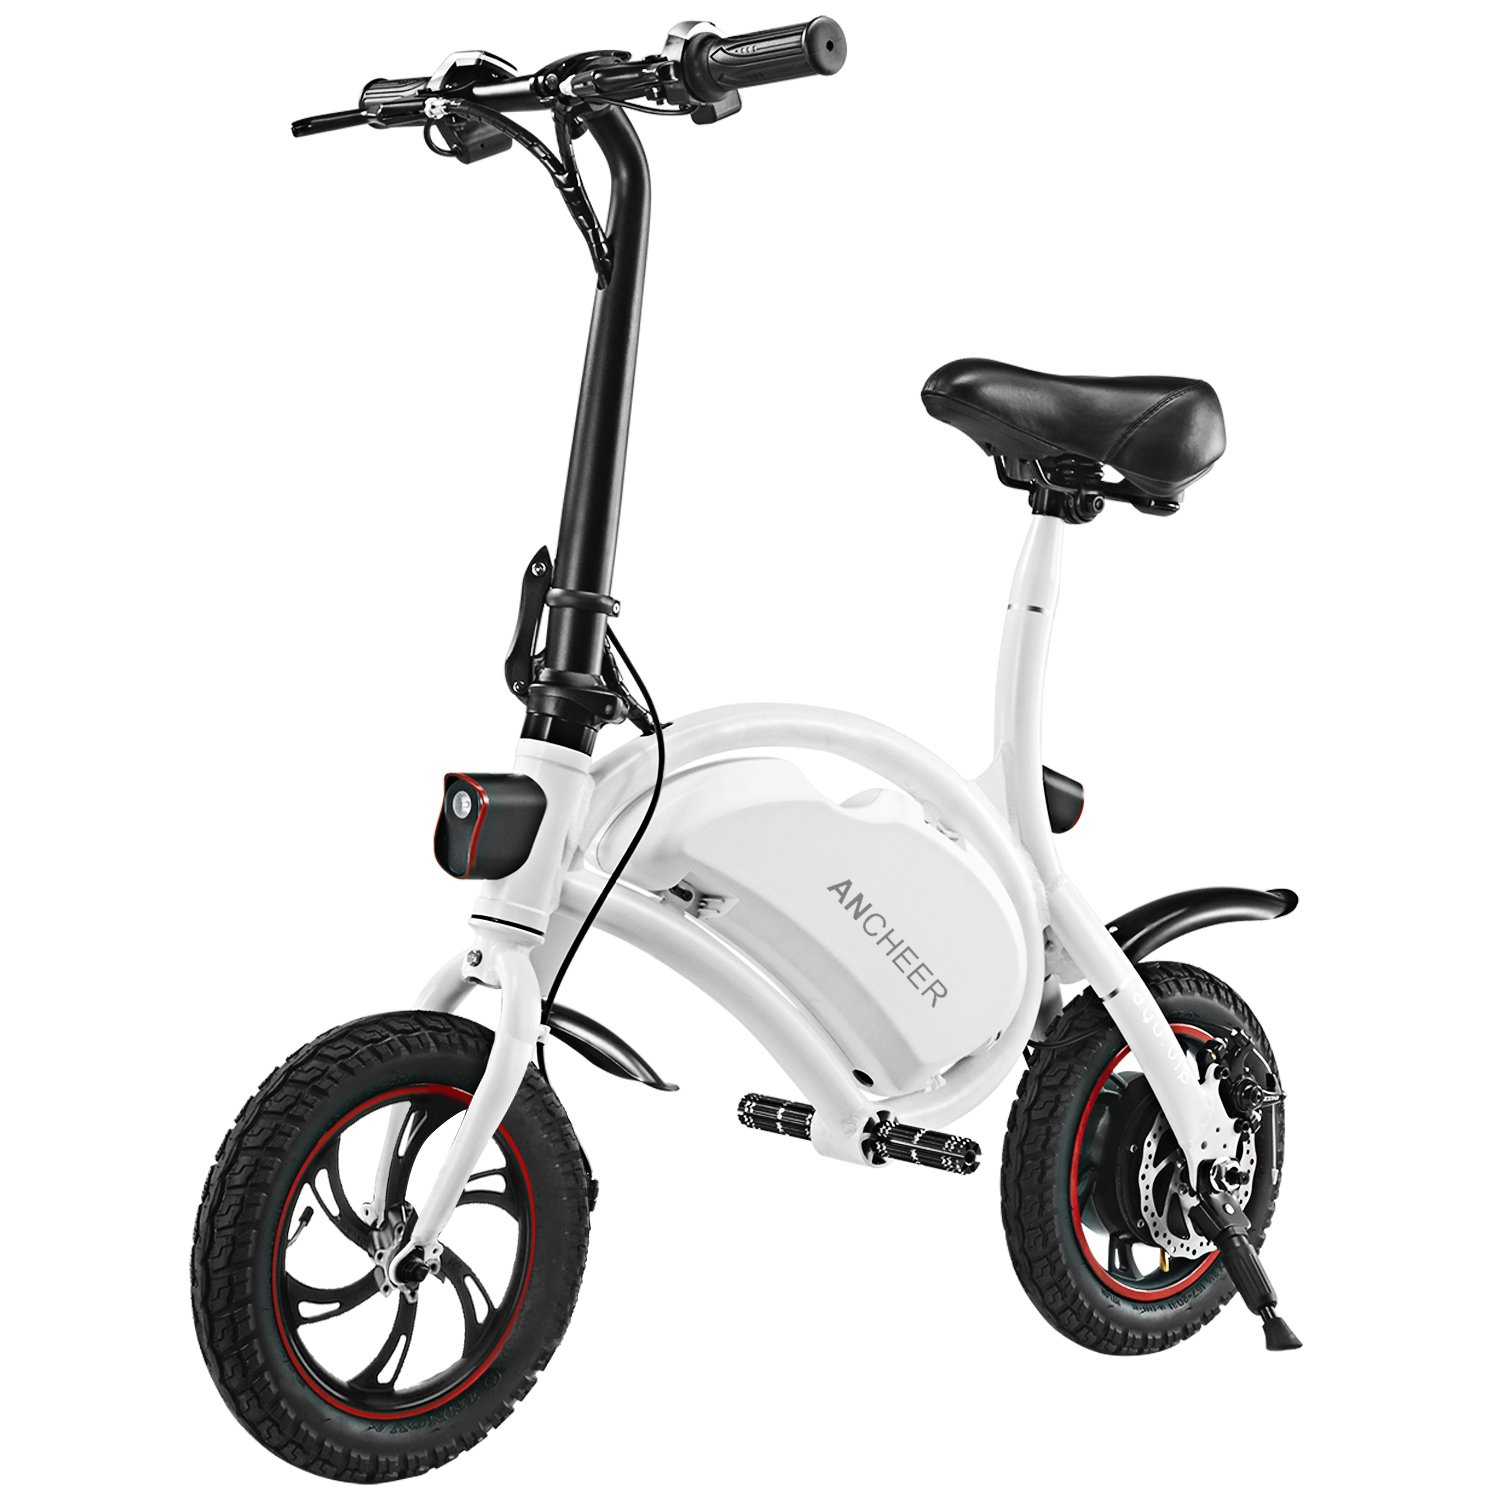 ANCHEER Folding Electric Bicycle/E-Bike/Scooter 350W Ebike with 12 Mile Range, NO APP Speed Setting by ANCHEER